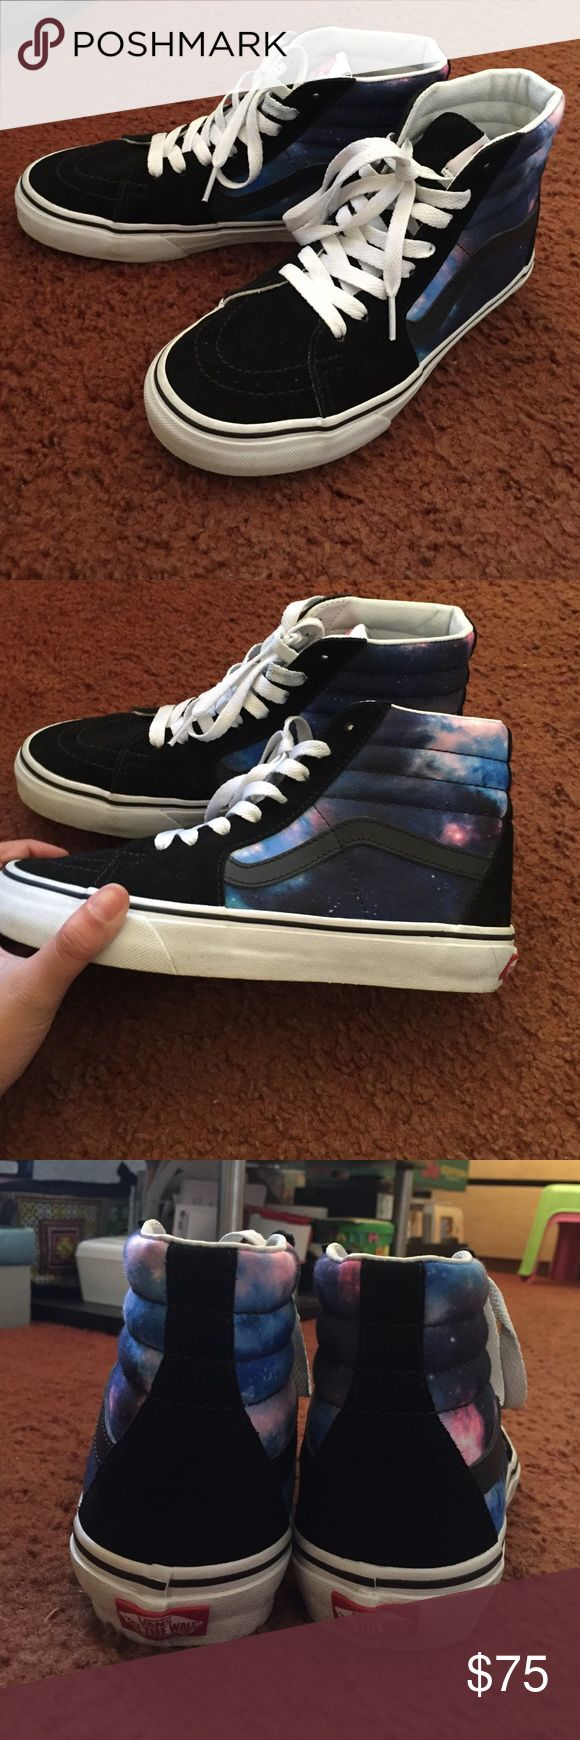 RARE GALAXY VANS SK8 HI GALAXY VANS SK8 HI. Worn many times! I'm still iffy about selling these 😁 Super cute. I love these shoes soooo much they're just too small for me now :( There are some wear here and there.  These were custom made on the Vans website. You can not find these anywhere. There is some discolor in on the laces ( look at my other post on my other vans ) but they aren't that bad and aren't that noticeable. REASONABLE OFFERS ONLY. The lowest I'll go will be $70. Size 6.5 in…